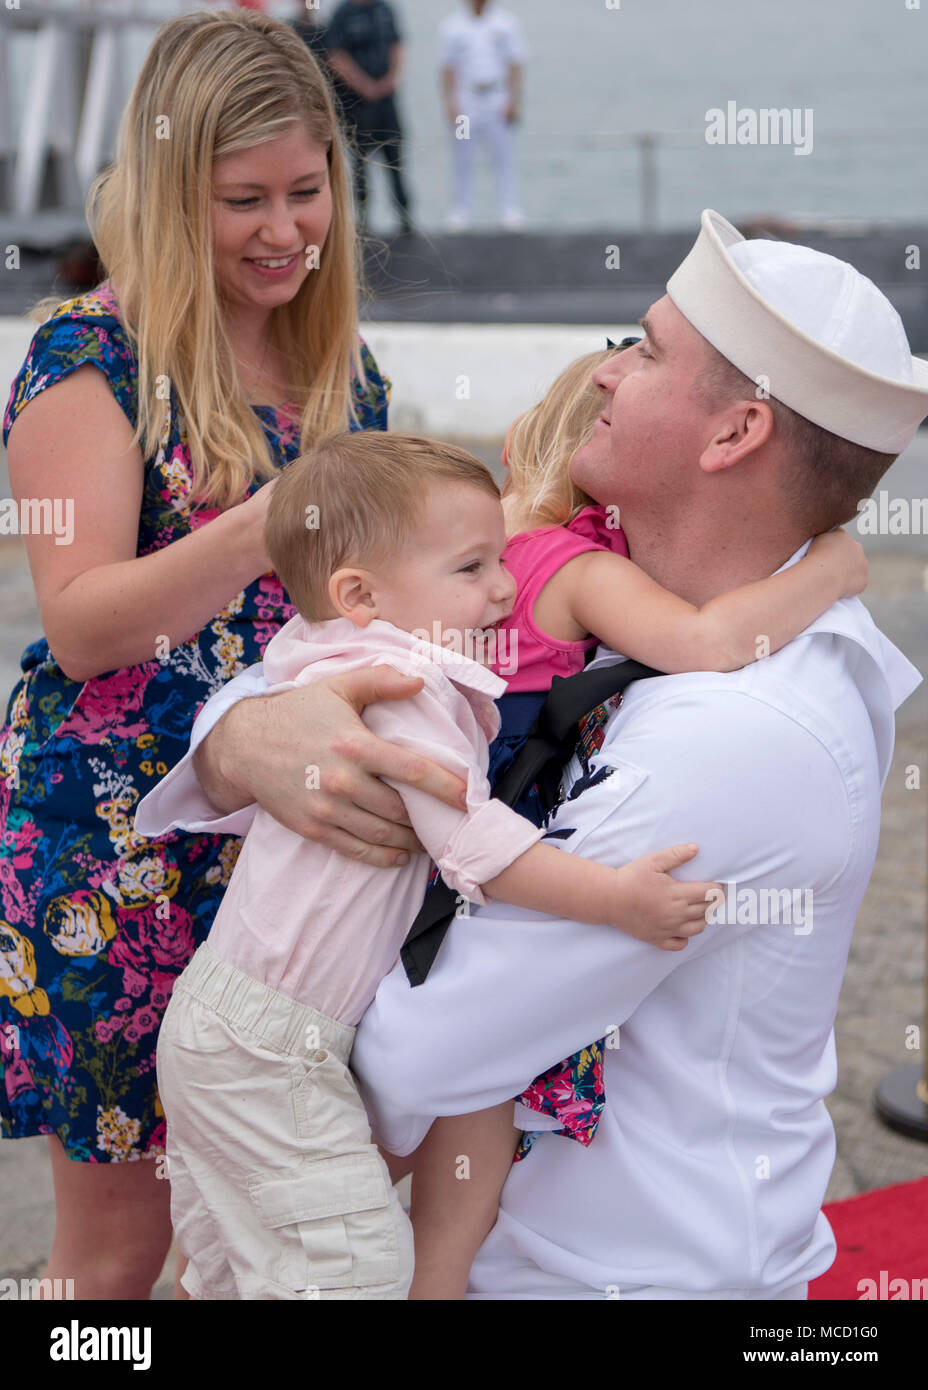 180214-N-LY160-0159 PEARL HARBOR, Hawaii (February 14, 2018) Machinist's Mate (Nuclear) 1st Class Thomas Bolin, assigned to the Virginia-class fast-attack submarine USS Texas (SSN 775) and native of Abilene, Texas, hugs his family on the submarine pier in Joint Base Pearl Harbor-Hickam, Feb. 14. USS Texas successfully completed a Western Pacific deployment in support of national security. (U.S. Navy photo by Mass Communication Specialist 2nd Class Michael H. Lee/ Released) - Stock Image